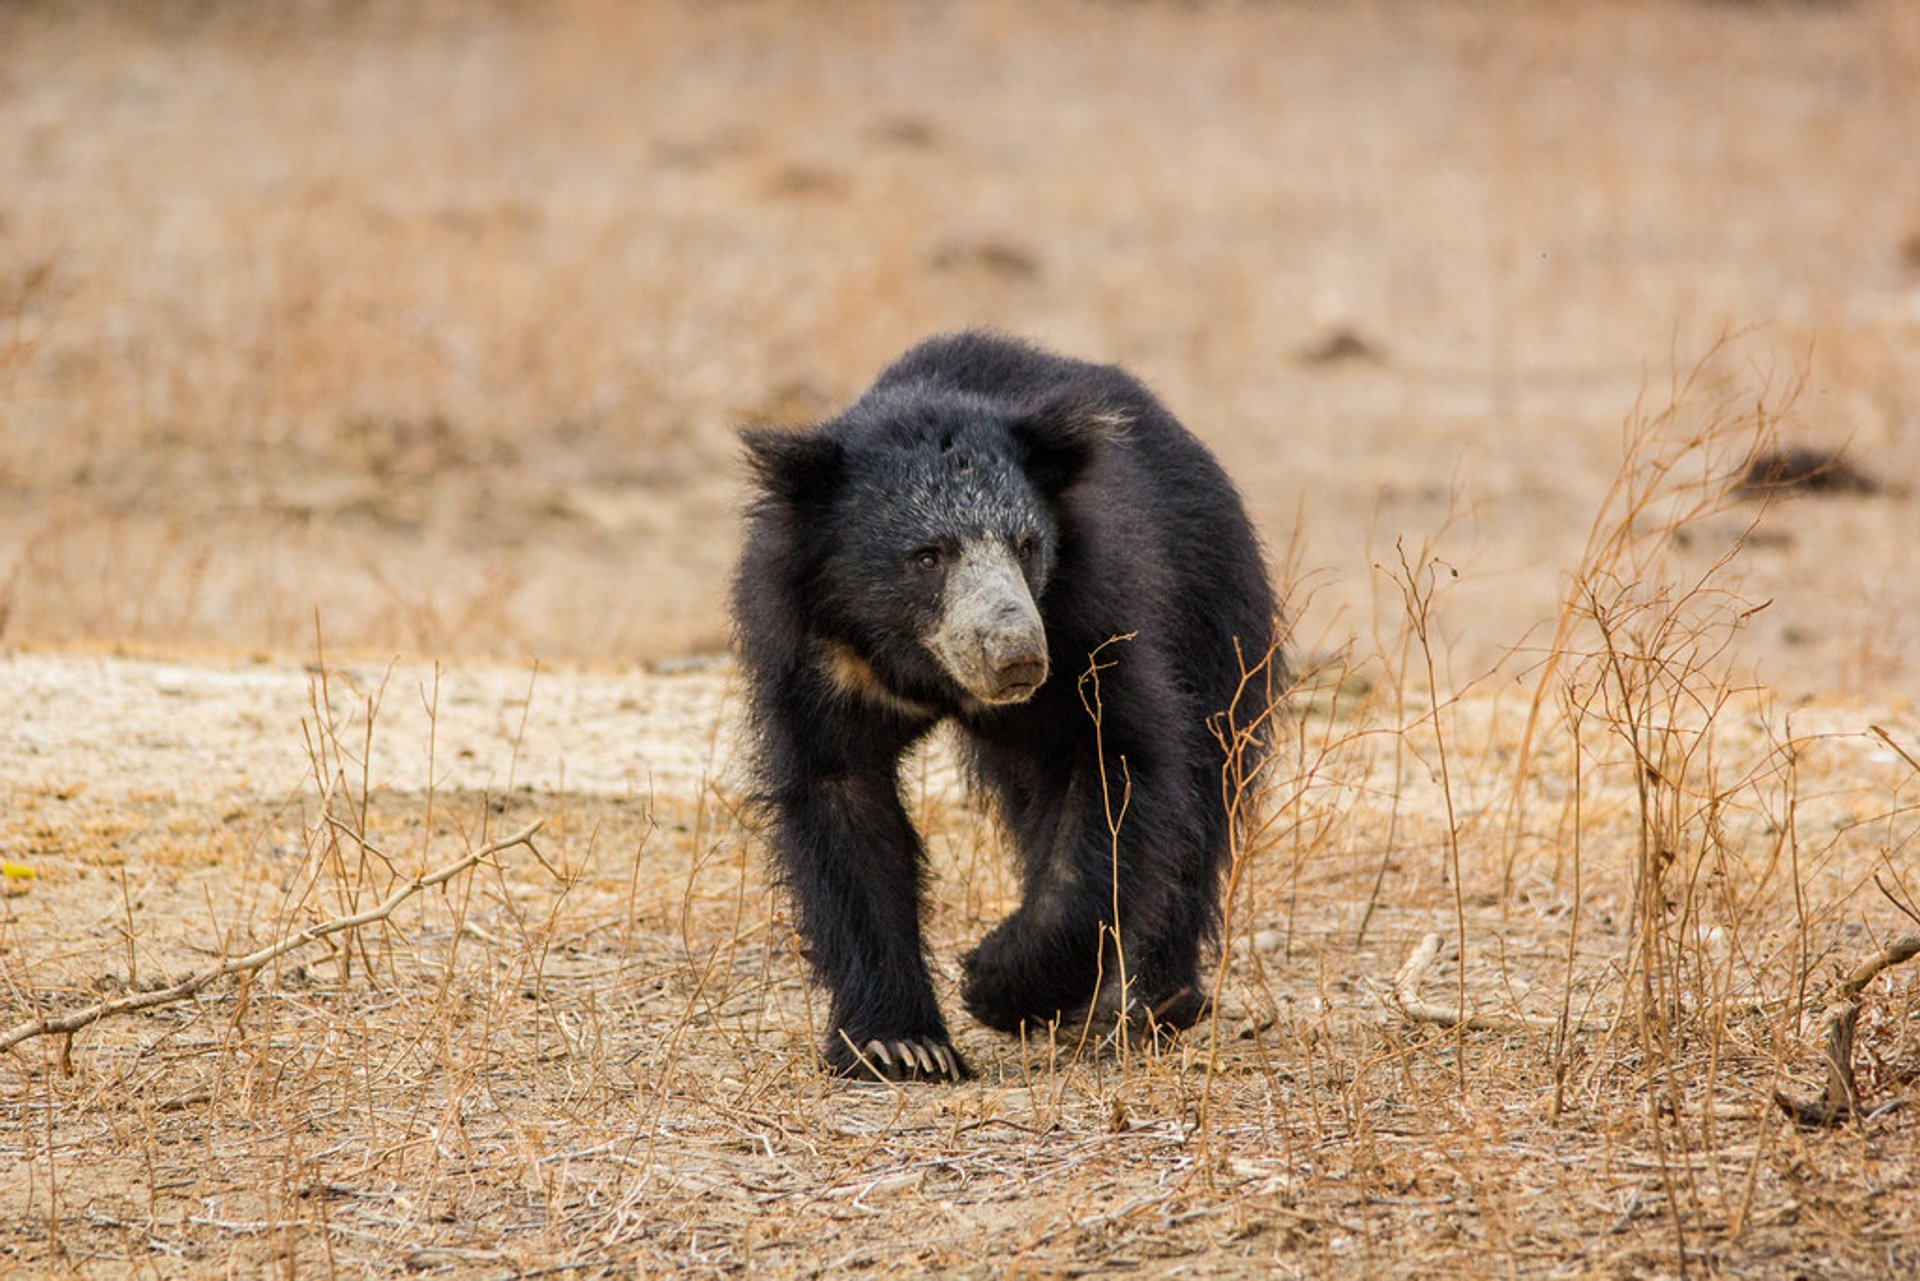 Sloth Bear in Sri Lanka 2019 - Best Time